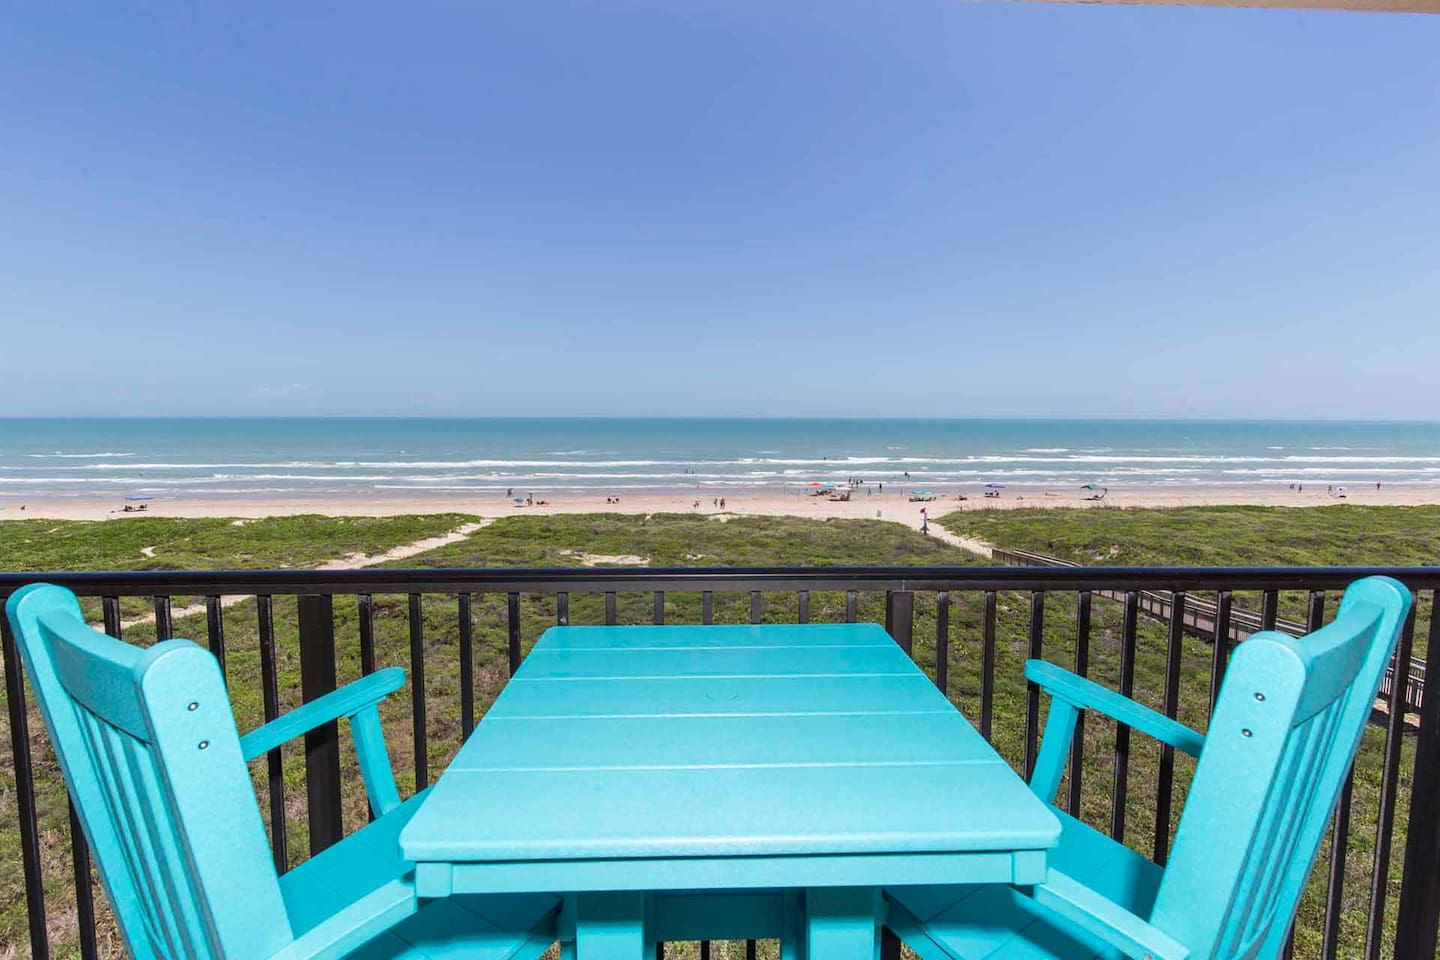 Watch the waves roll in as you enjoy the beautiful beachfront view!